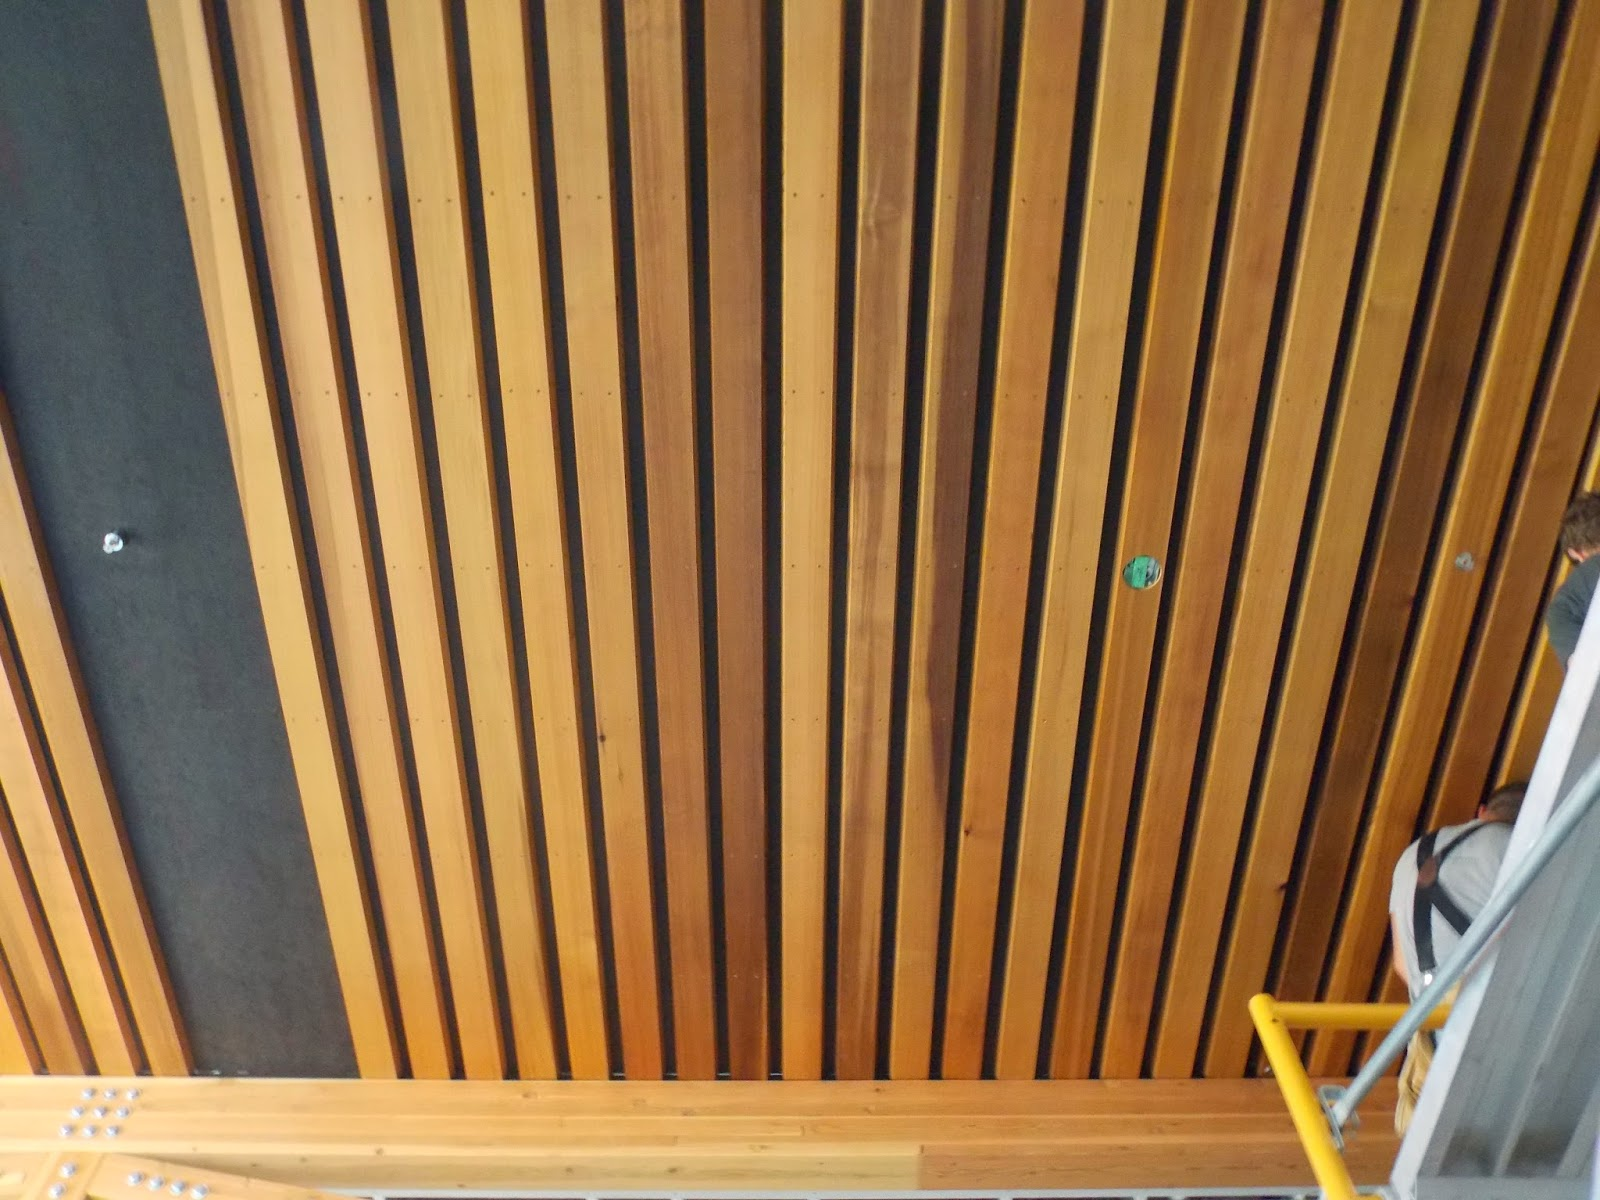 How To Put Wood Slats On Ceiling | www.Gradschoolfairs.com